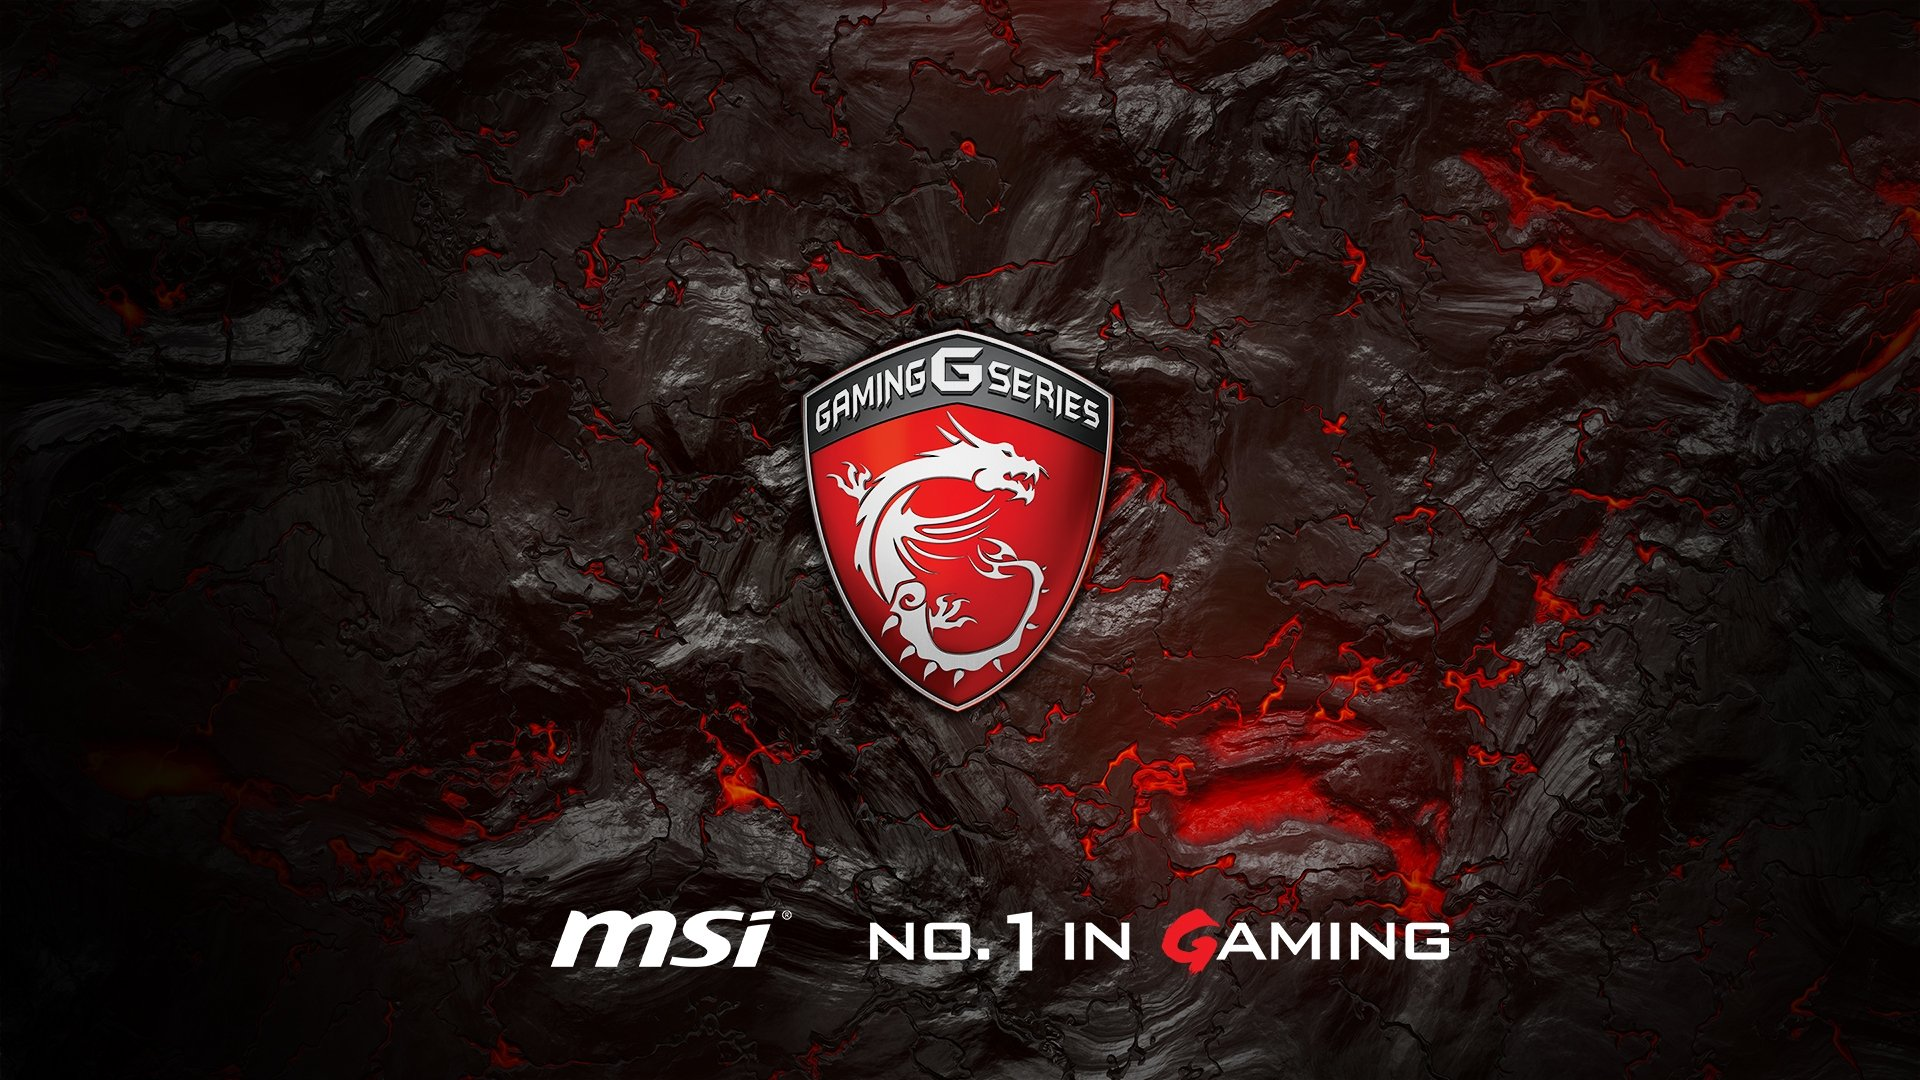 msi gaming logo wallpaper